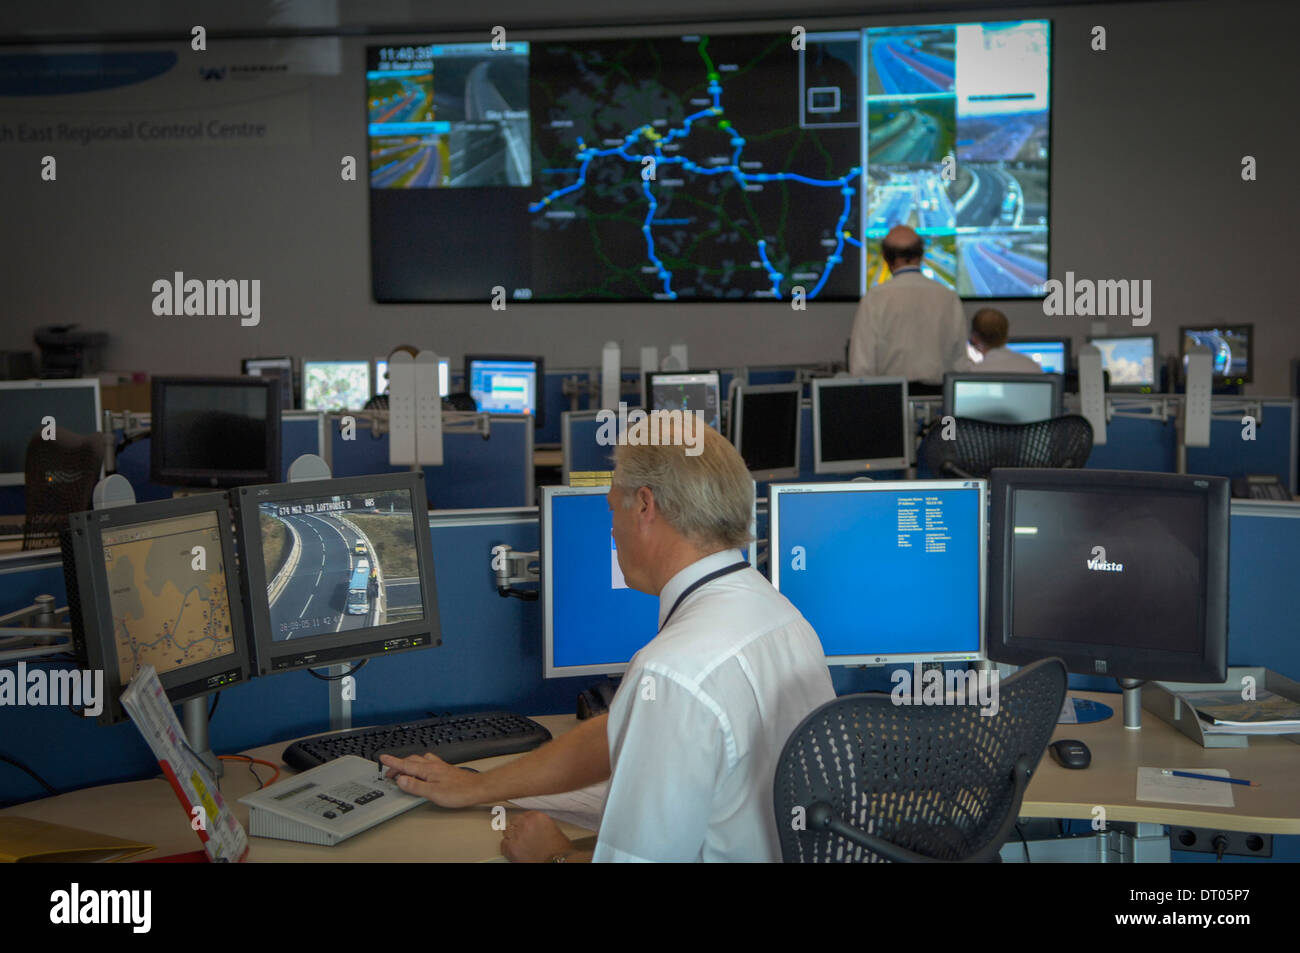 North East Regional Control Center for The Highways Agency,Wakefield,UK - Stock Image